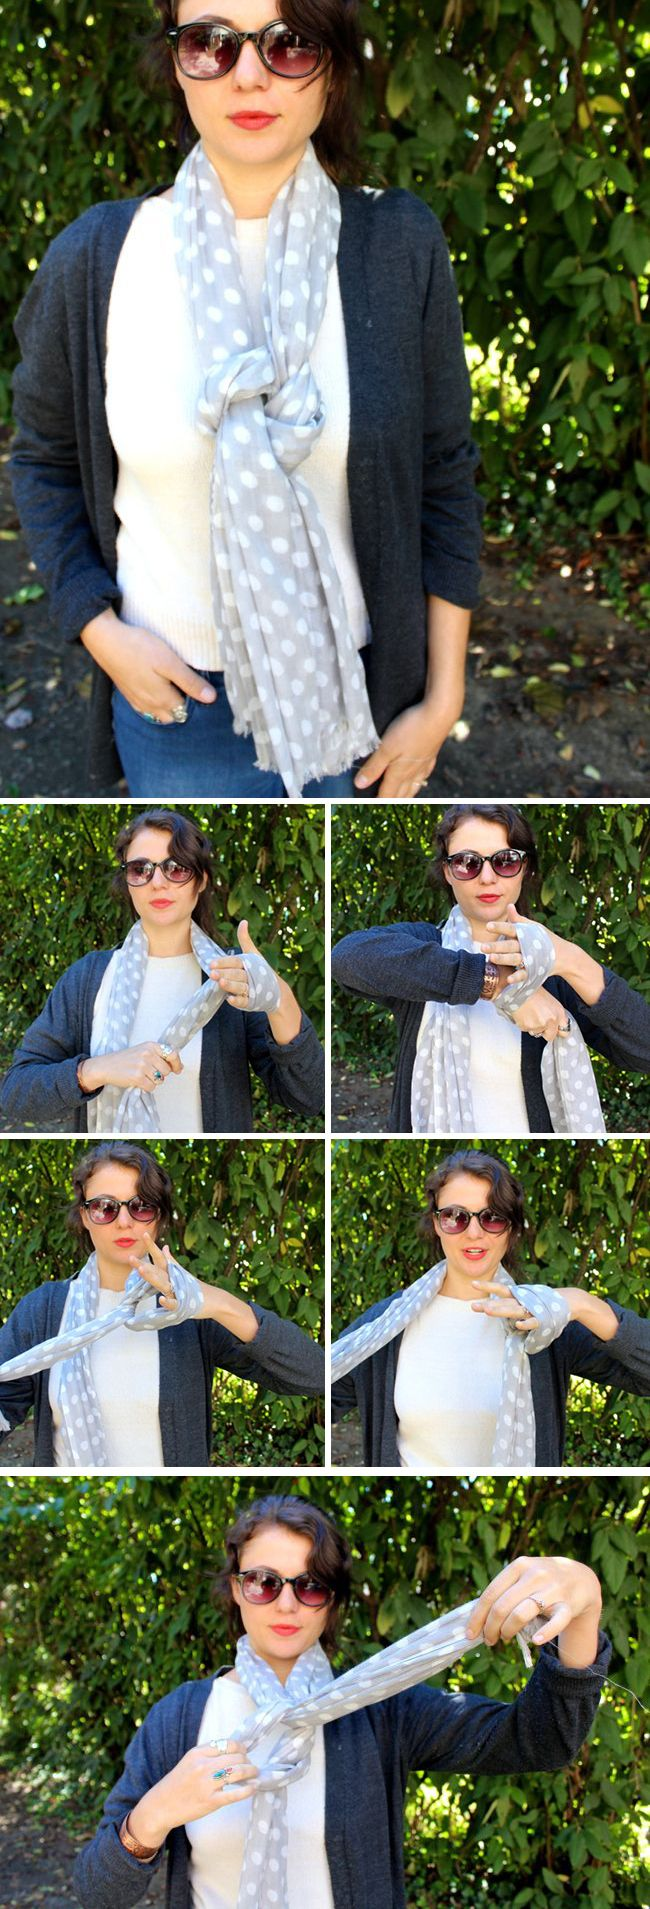 13 Super Stylish Ways to Tie a Scarf | Different Ways of Tying a Scarf | HelloNatural.co